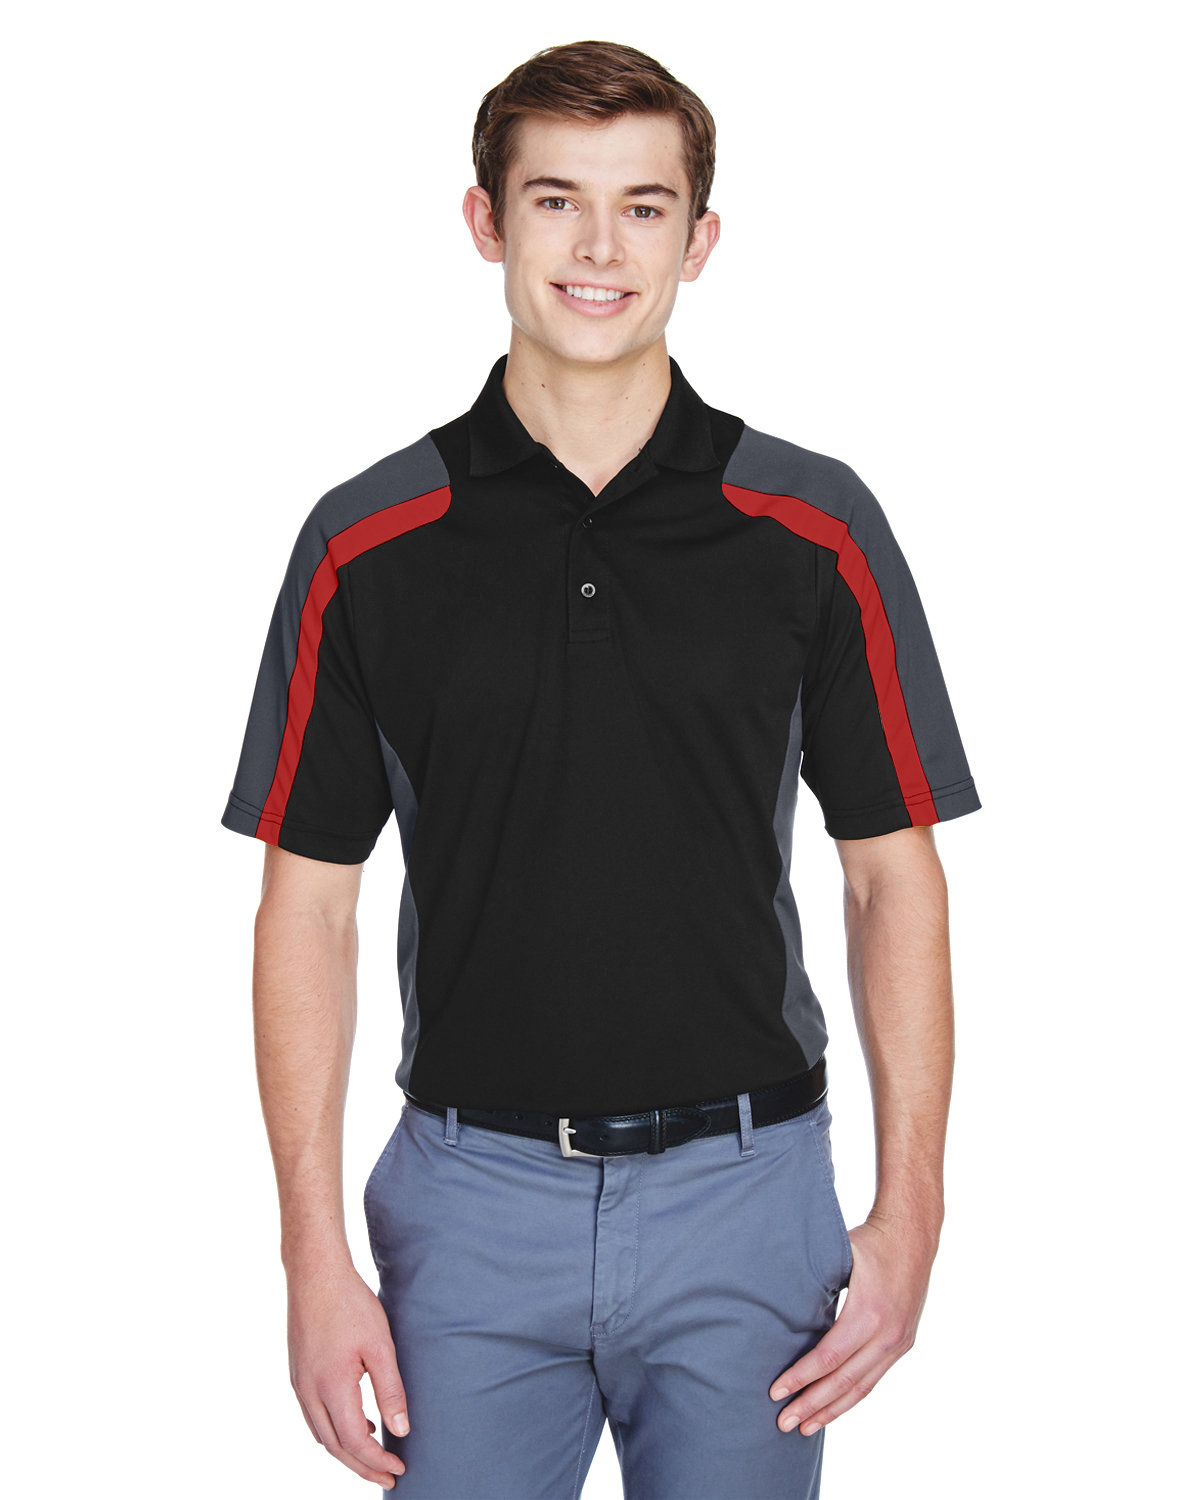 Extreme Men's Eperformance™ Strike Colorblock Snag Protection Polo BLACK / CL RED